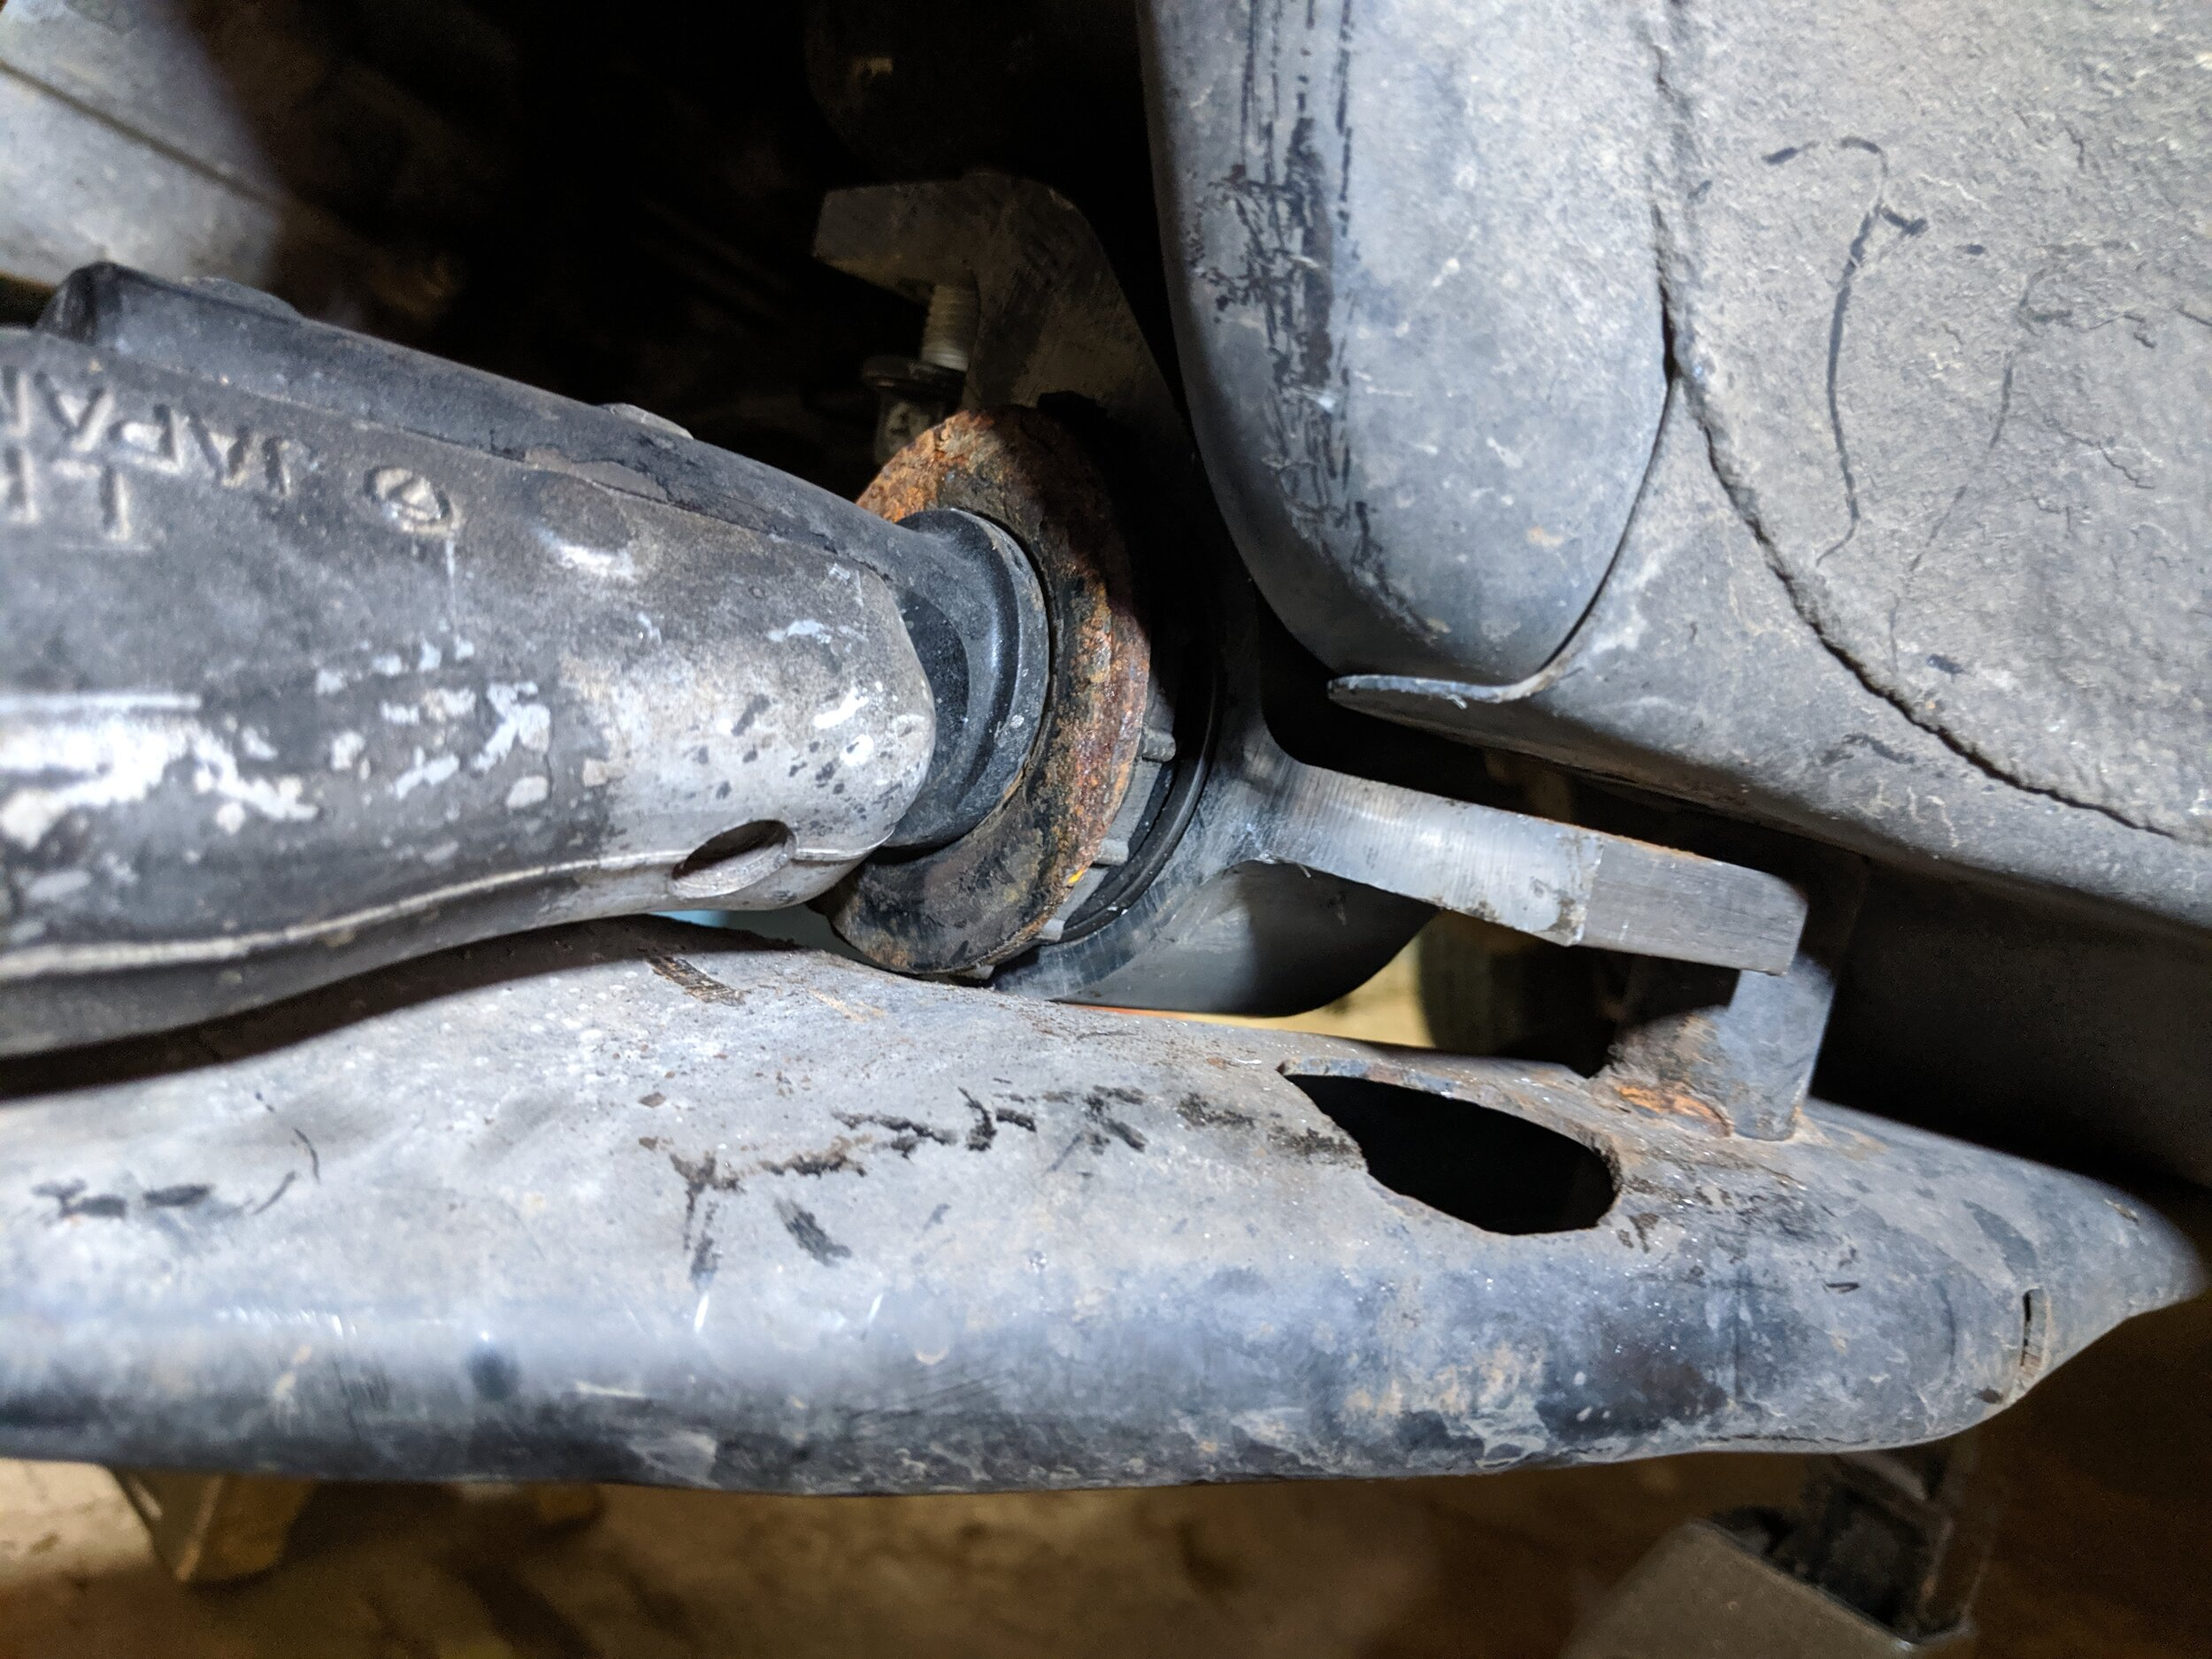 If you leave the subframe on this is what you will need to do. One bolt removed and one very loose to allow the mount to be shifted and allow for the arm to come out.